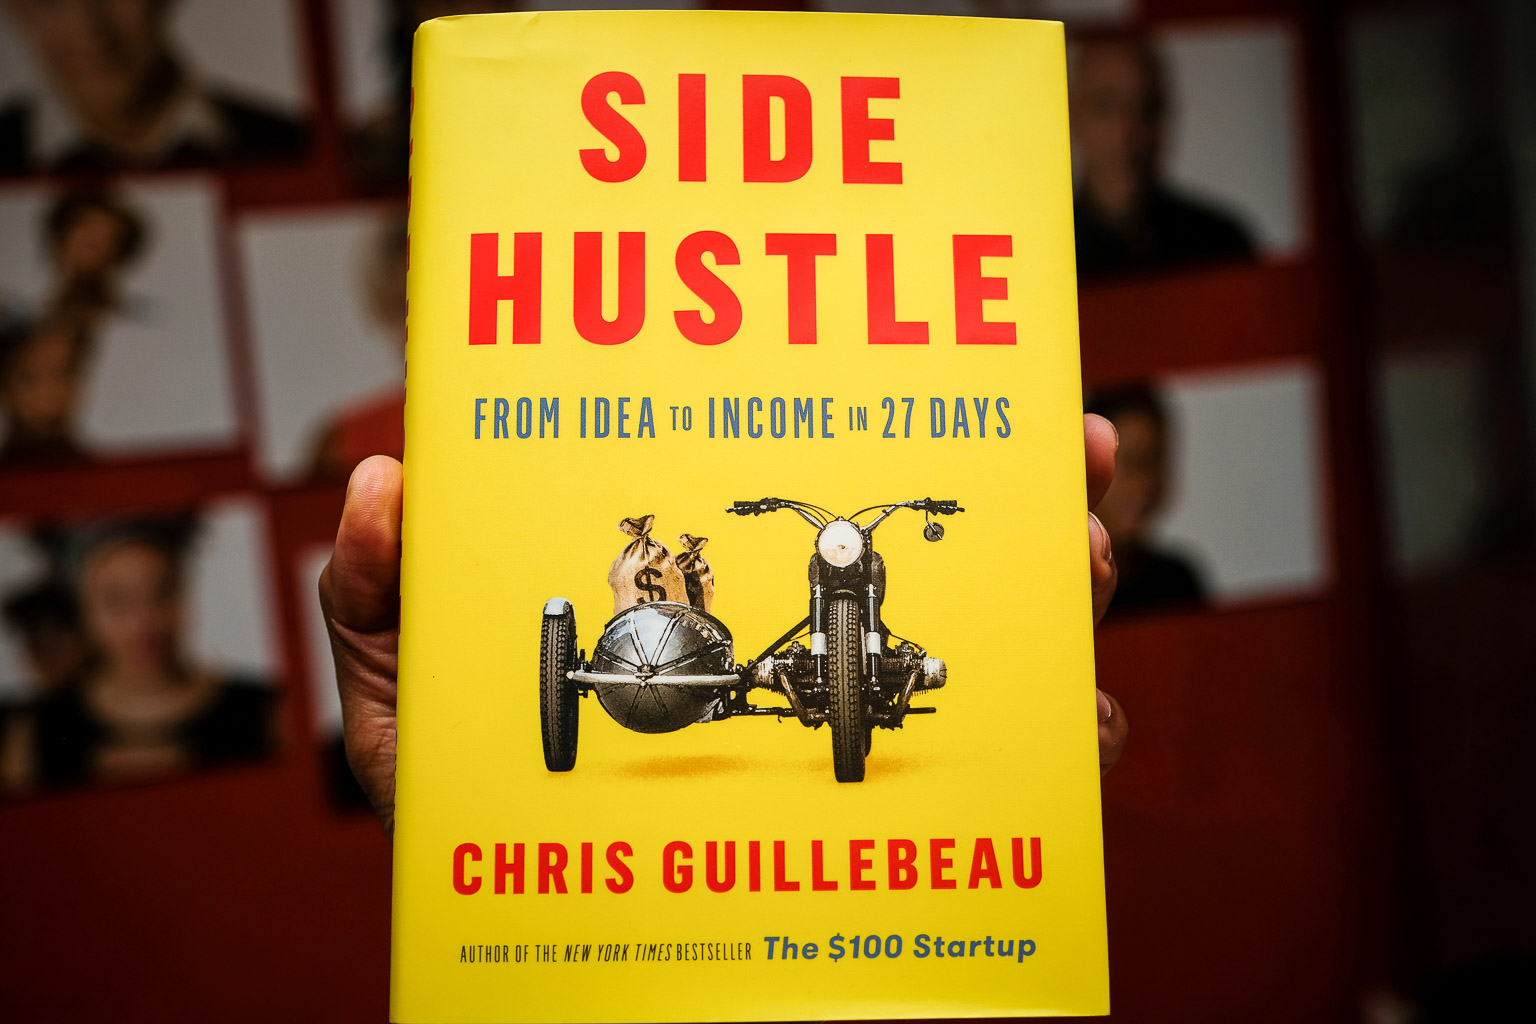 Check out Side Hustle! - If you find you enjoy the Side Hustle School podcast and want more guidance on how to turn your idea into revenue, check out the book.Click here or click the image to check it out on Amazon.